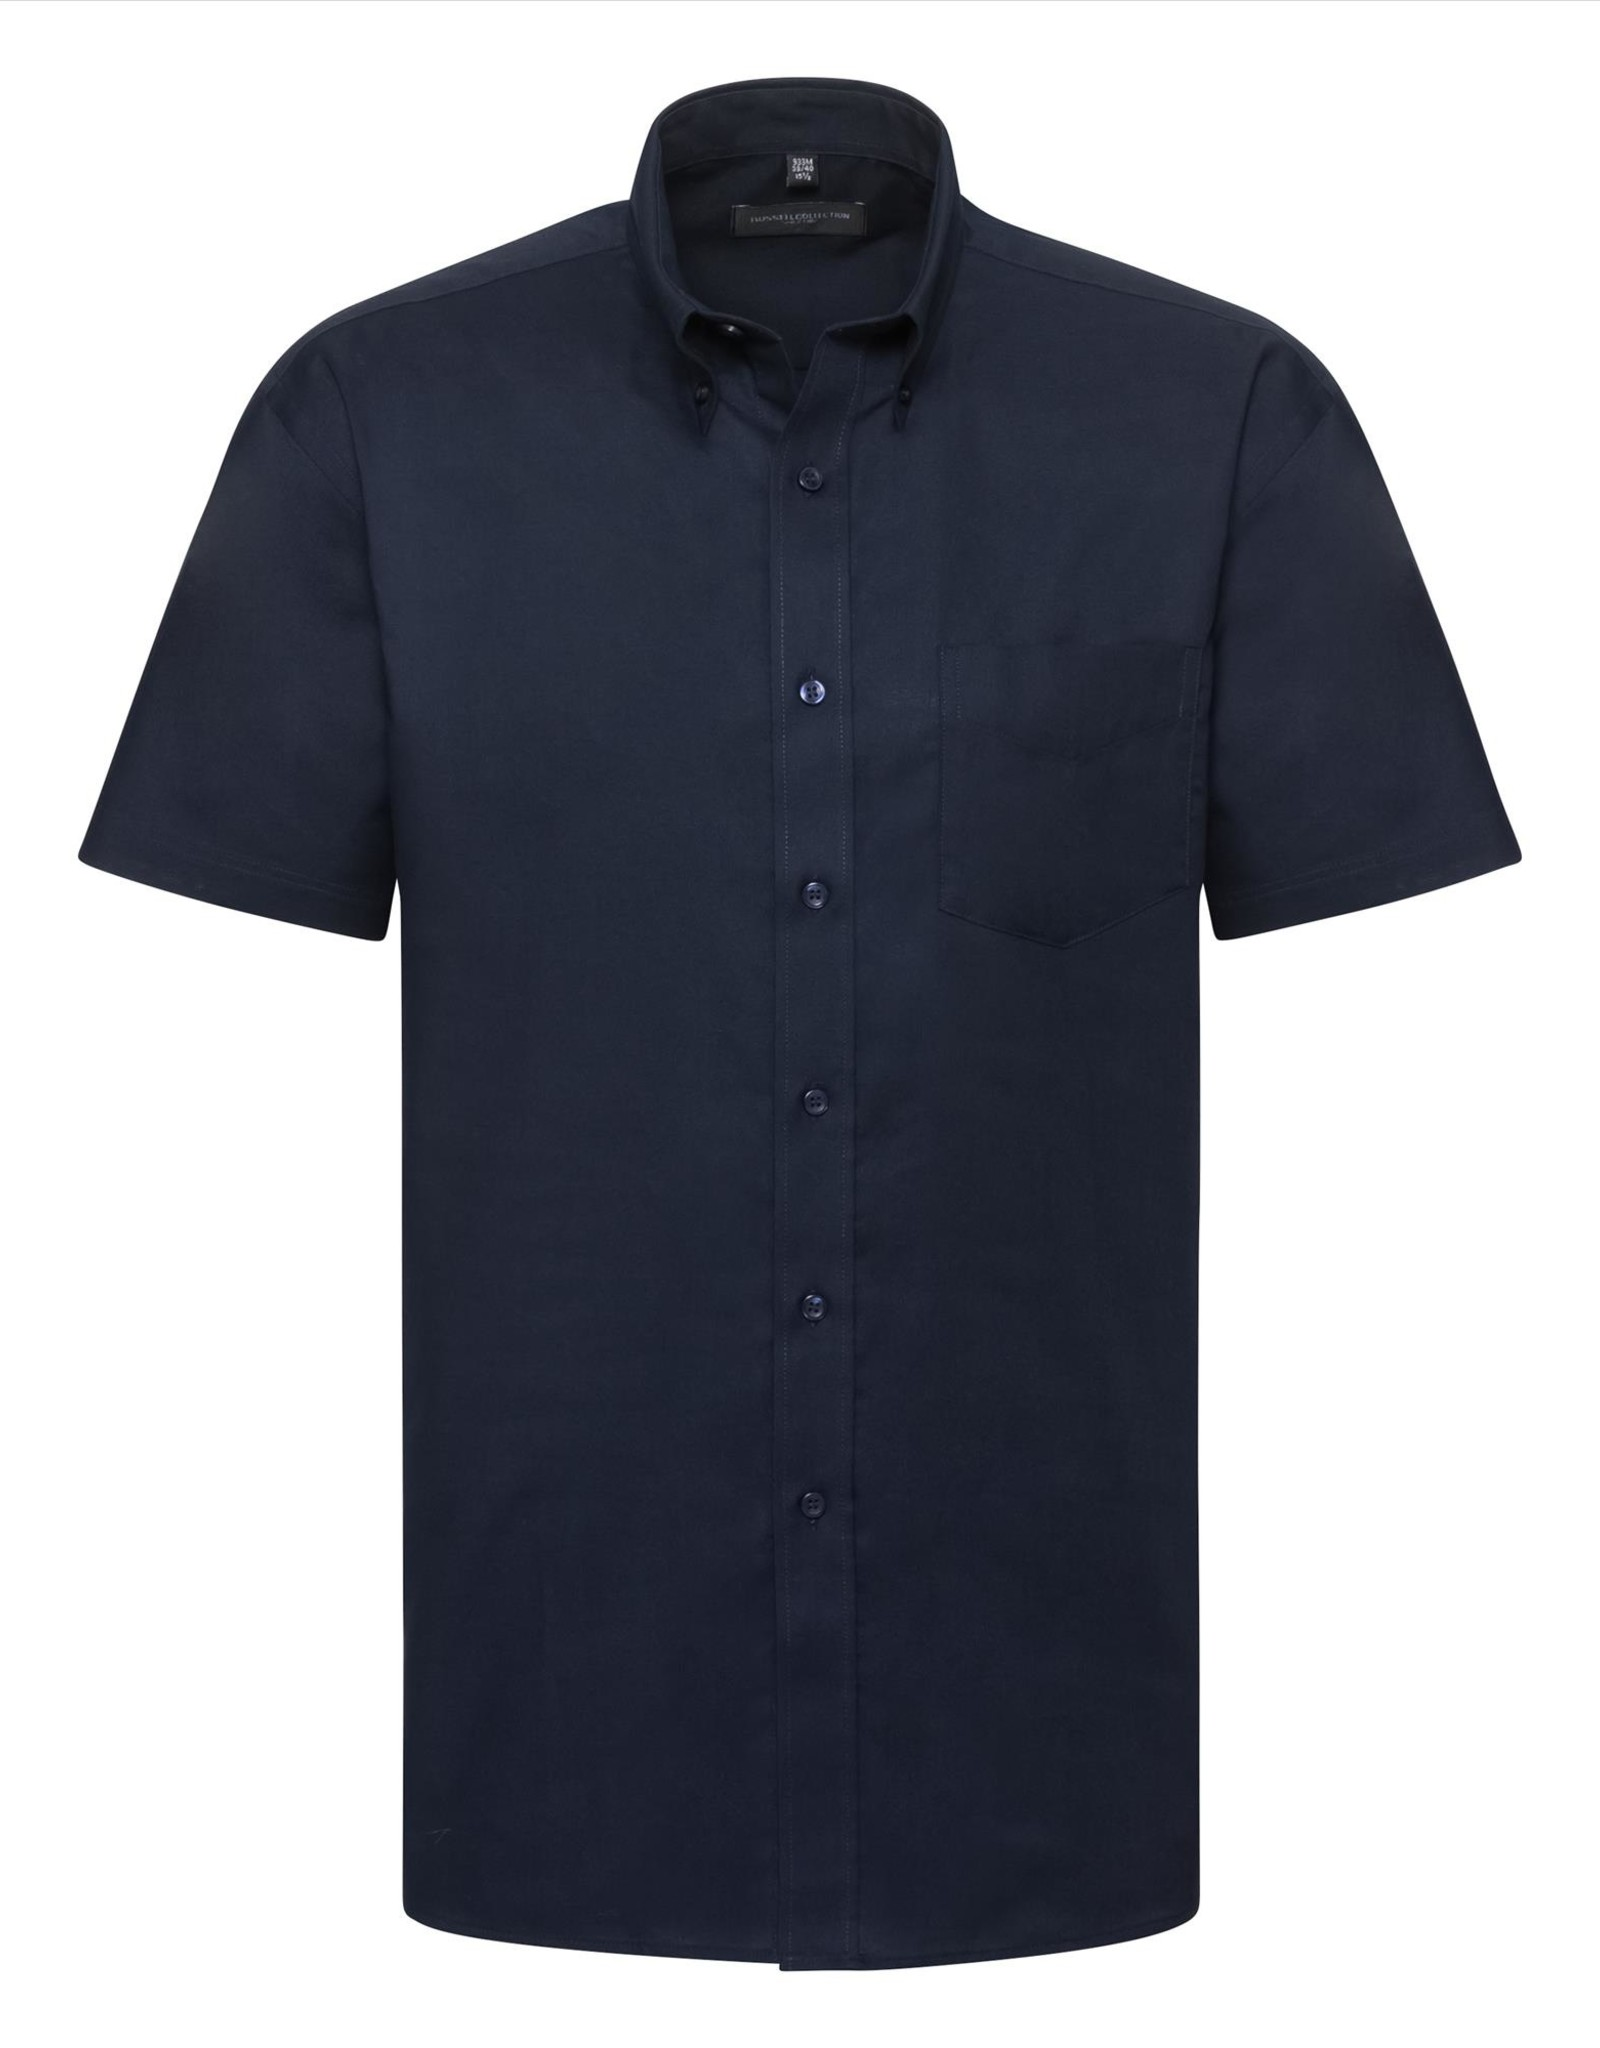 Russell OVERHEMD Classic Oxford korte mouw navy